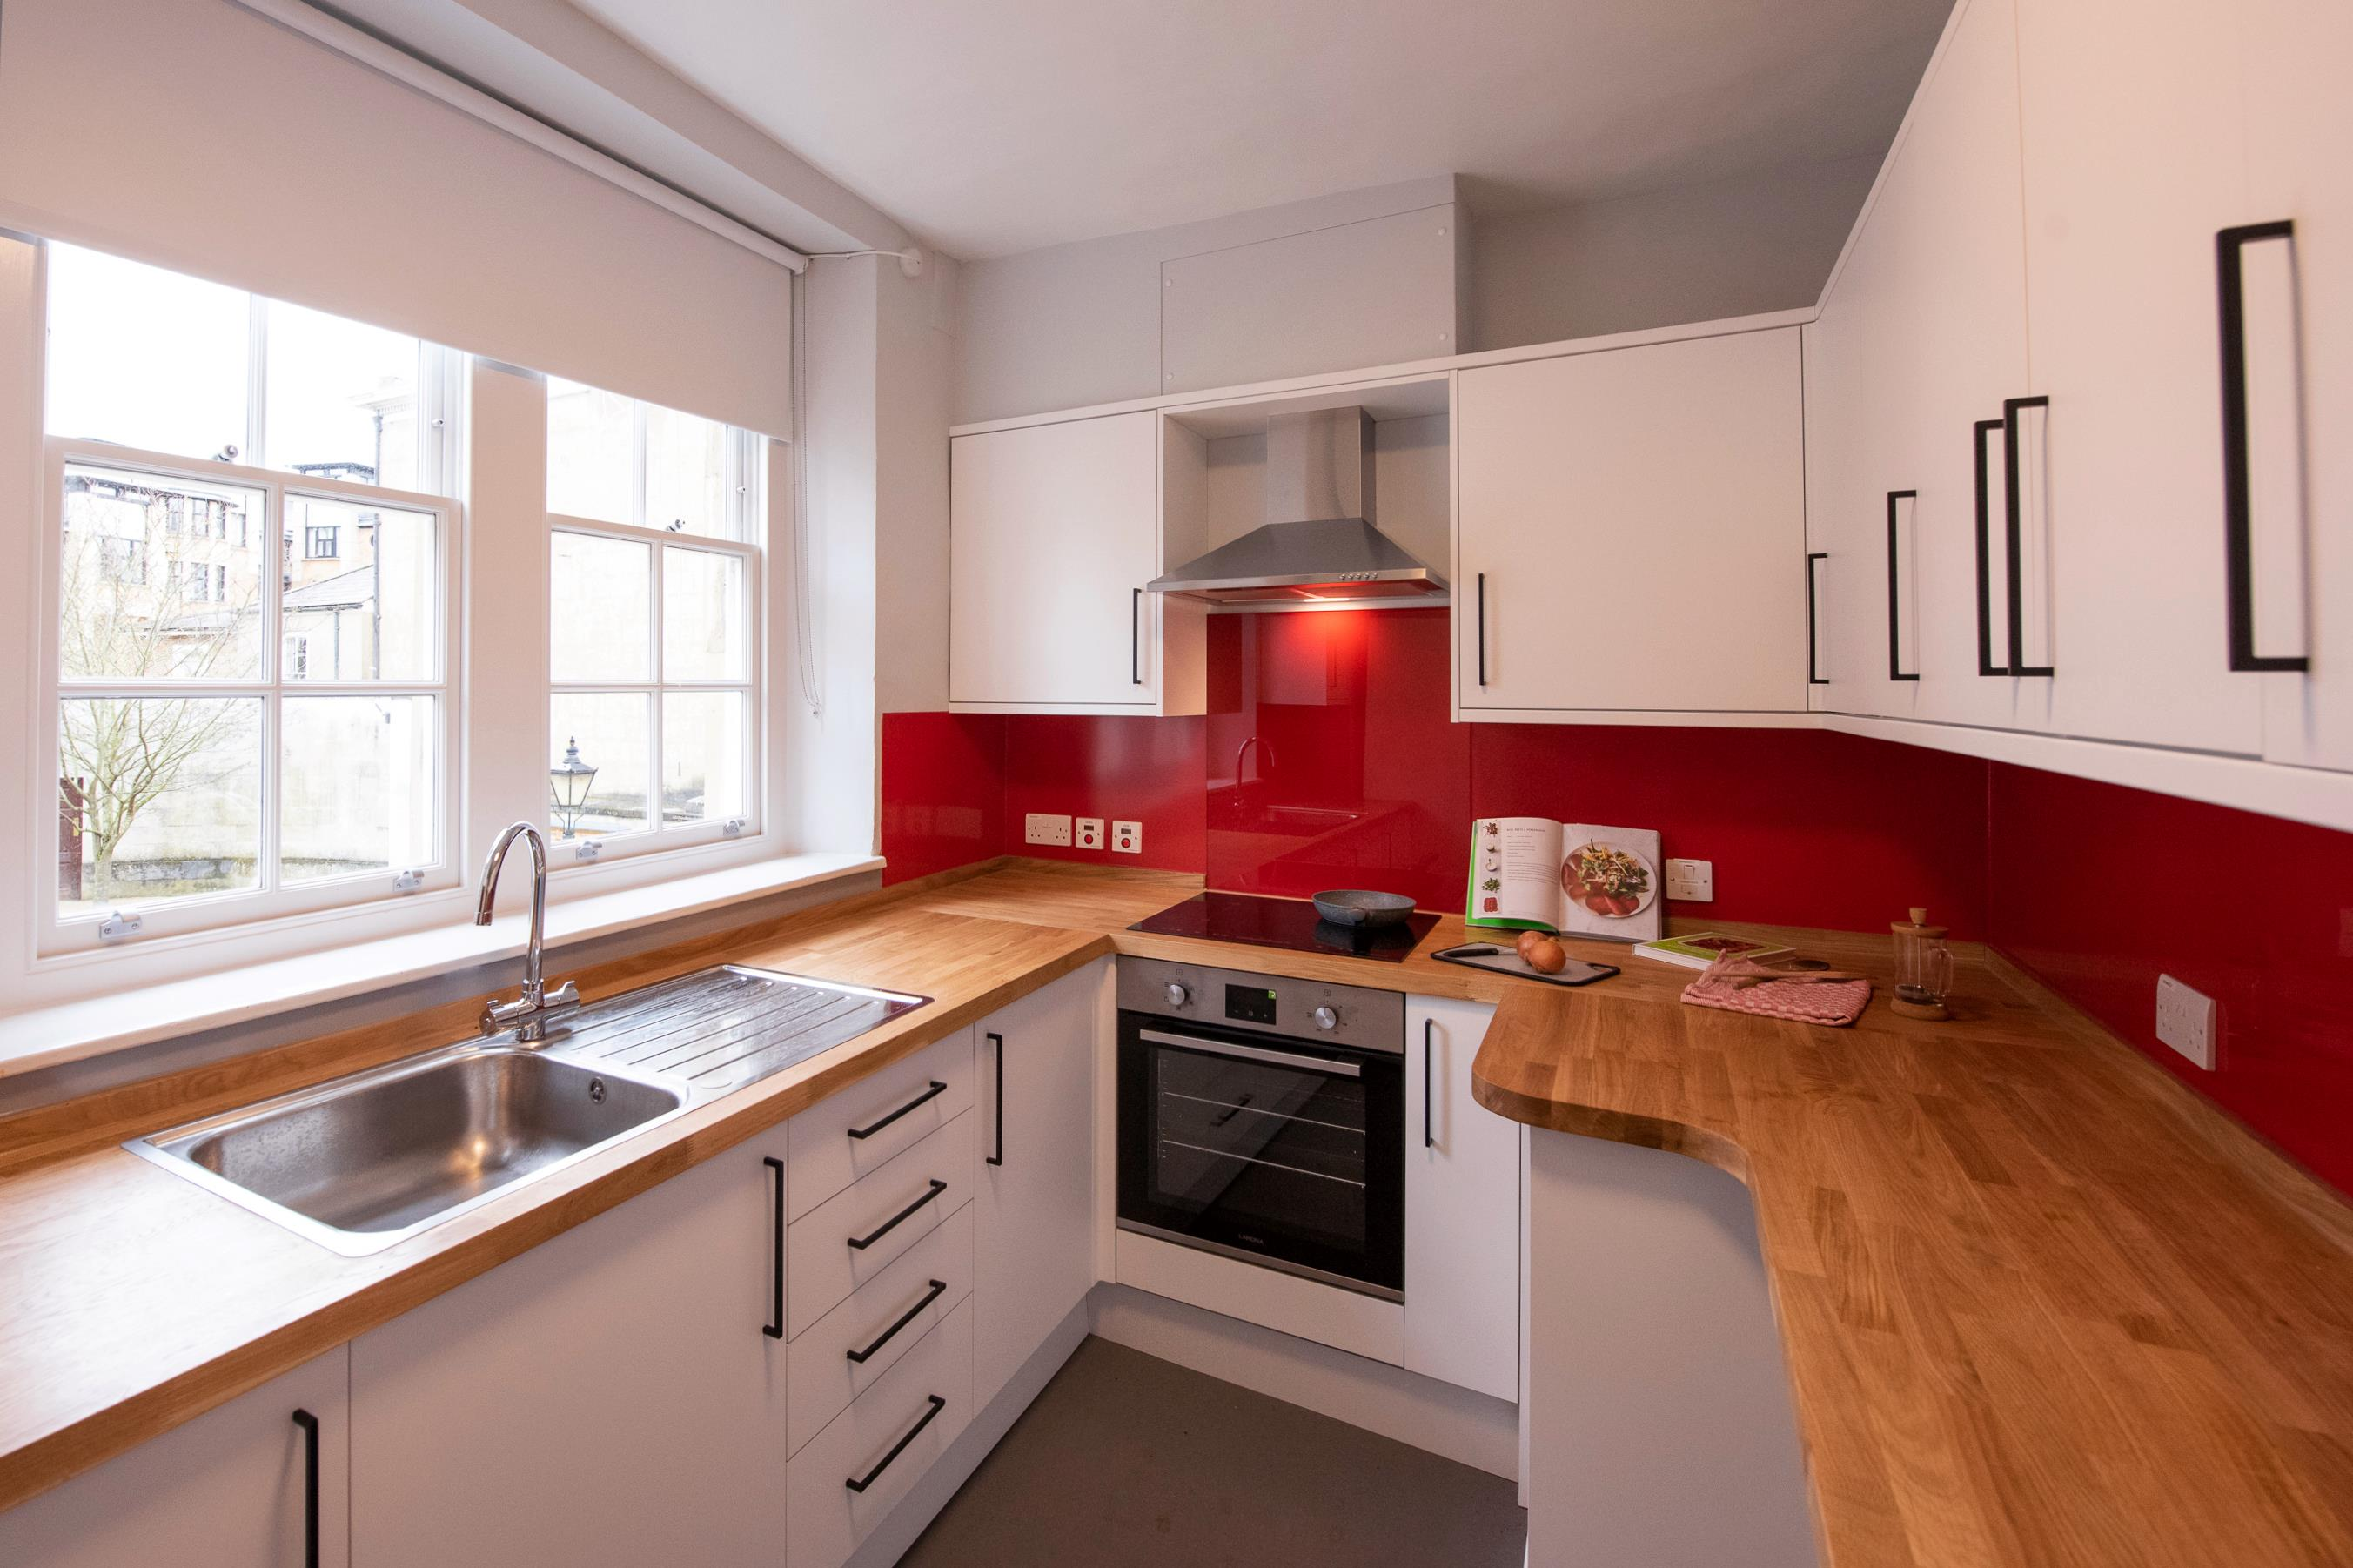 View of a square kitchen, with white units on three sides including a sink, hob and oven. There is a window and red splash-backs.